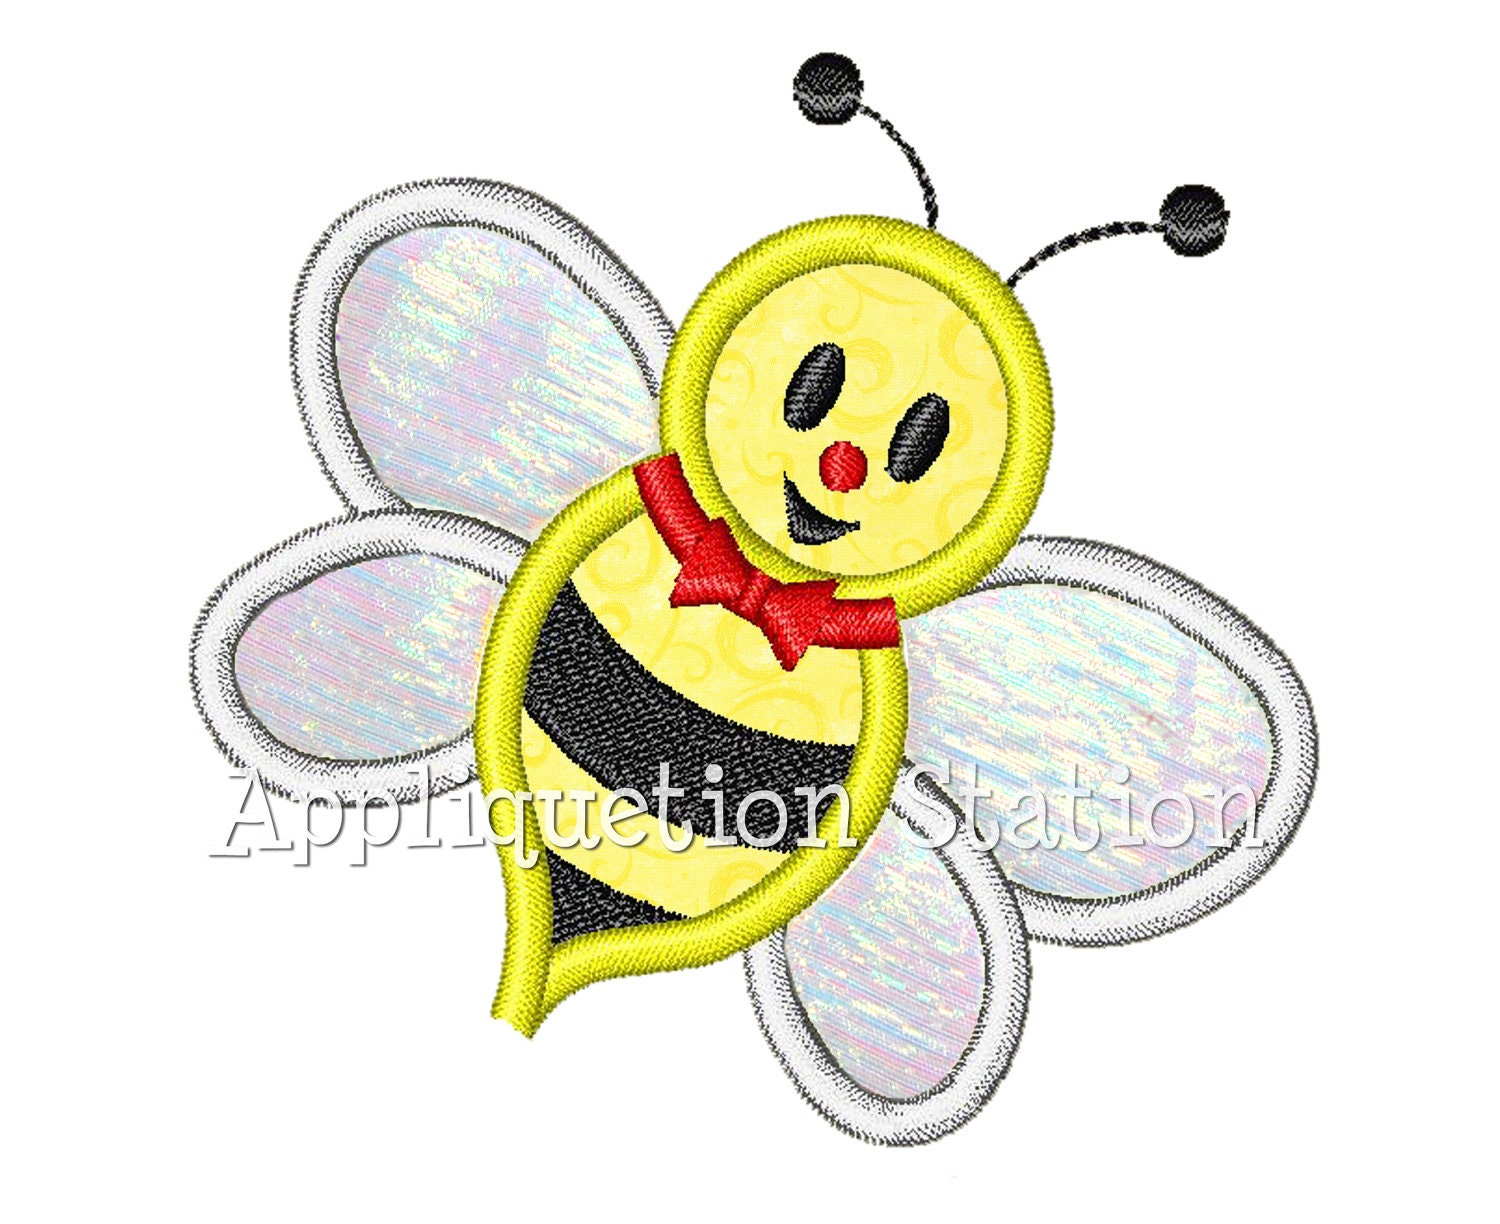 Bumble bee embroidery designs car pictures - Honey Bumble Bee Applique Machine By Appliquetionstation